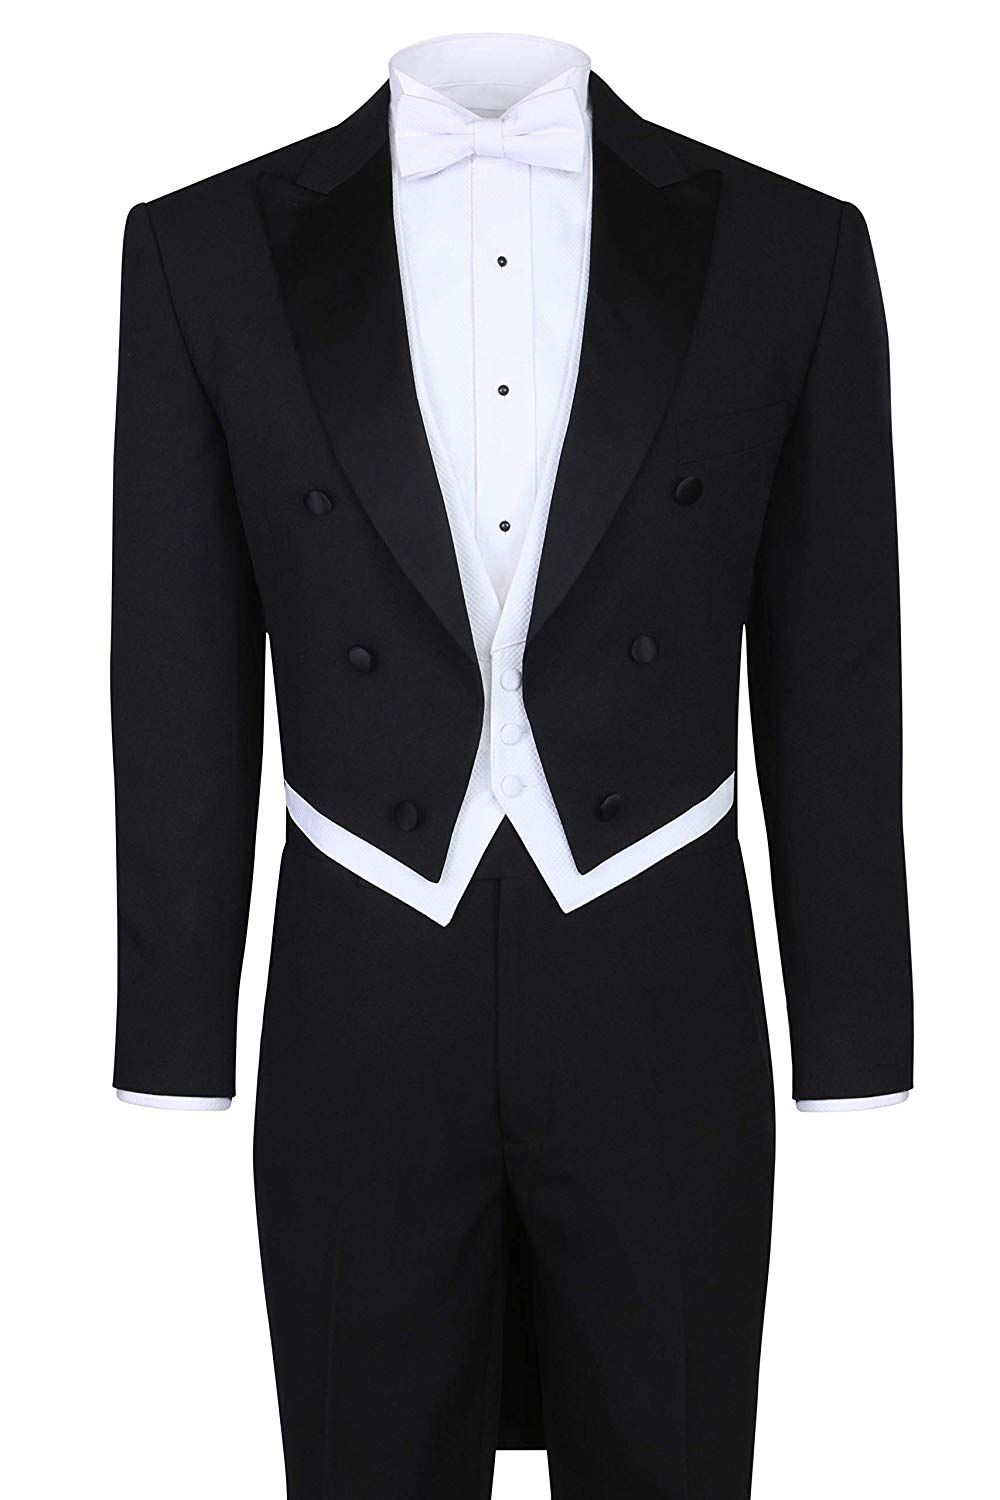 1920s mens fashion evening wear tuxedos and dinner